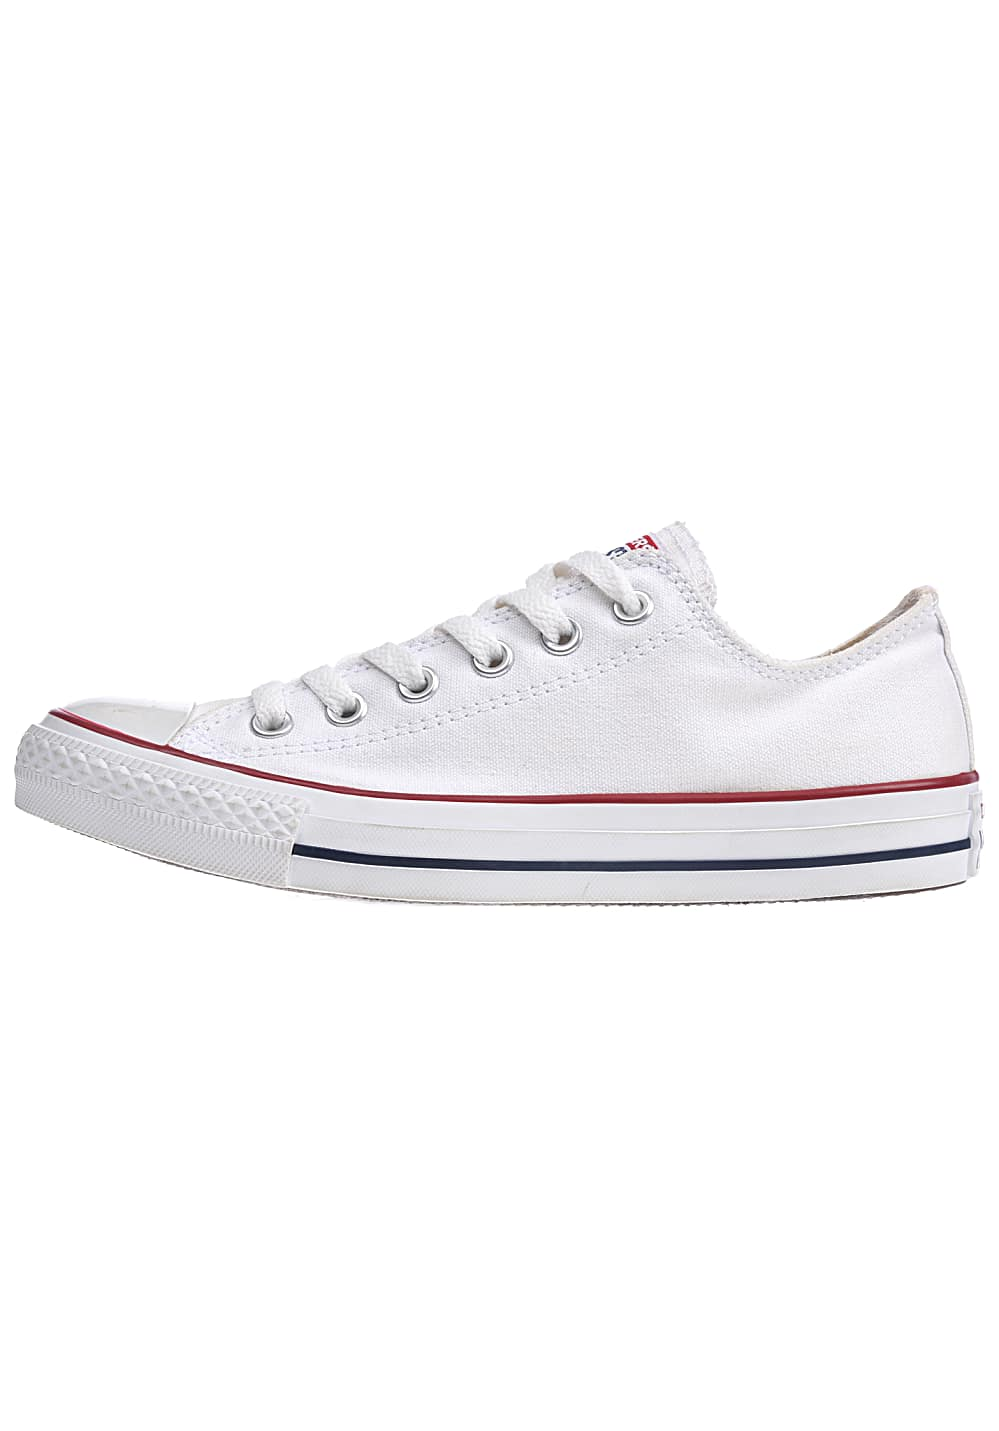 Converse All Star Ox - Sneaker - Weiß - Planet Sports